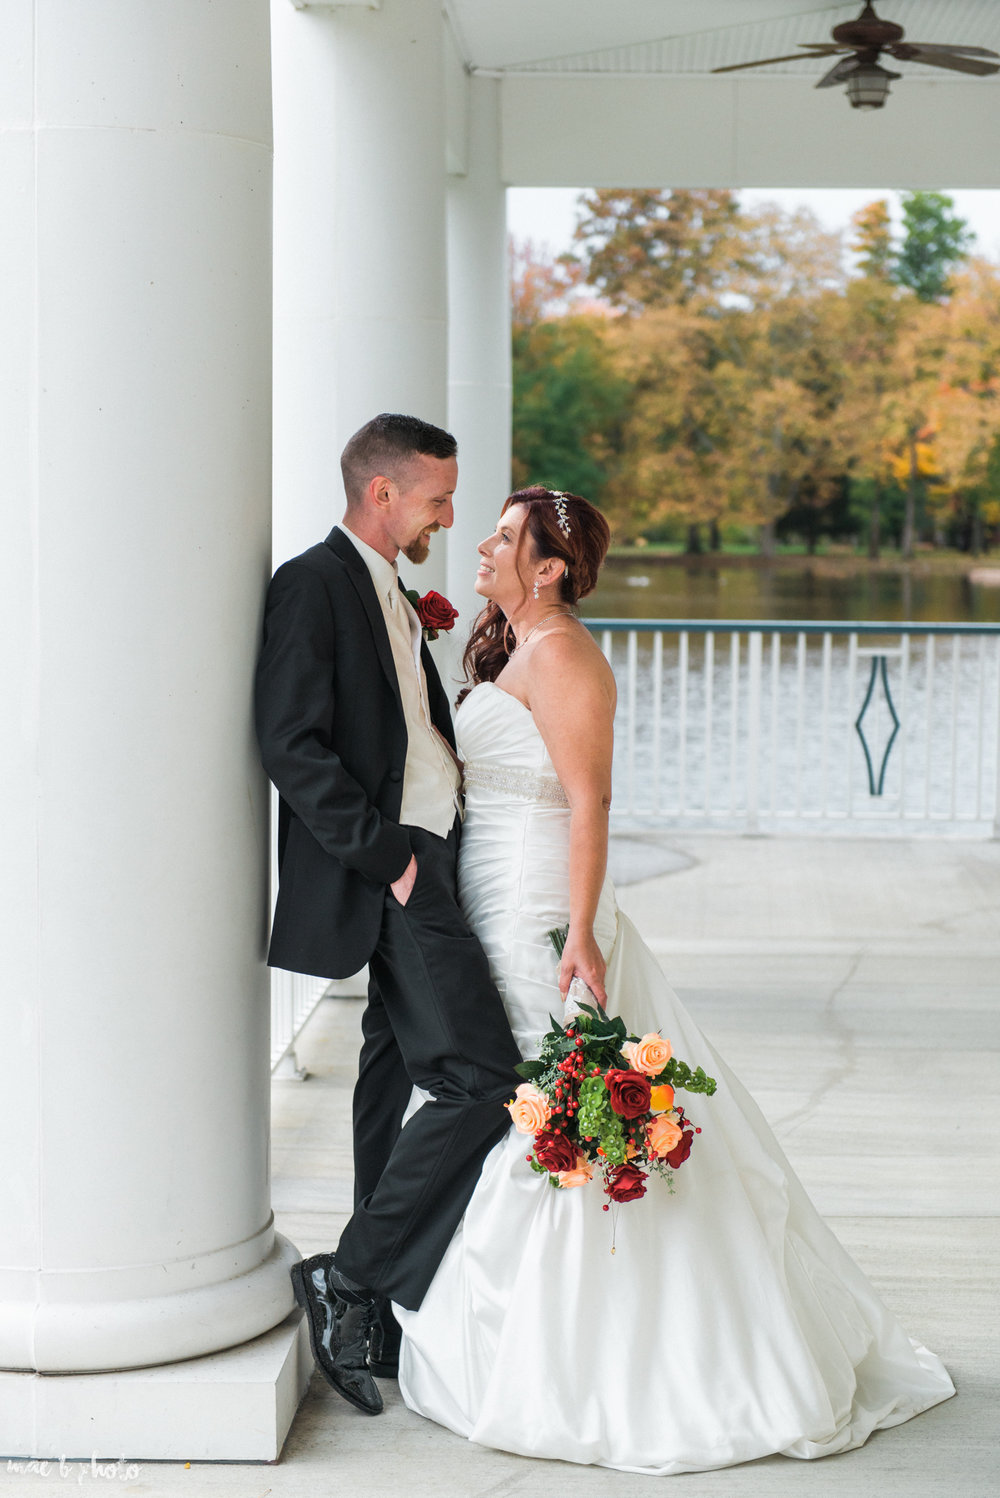 tracey and aaron's personal fall wedding at tiffany's banquet center in brookfield ohio-65.jpg